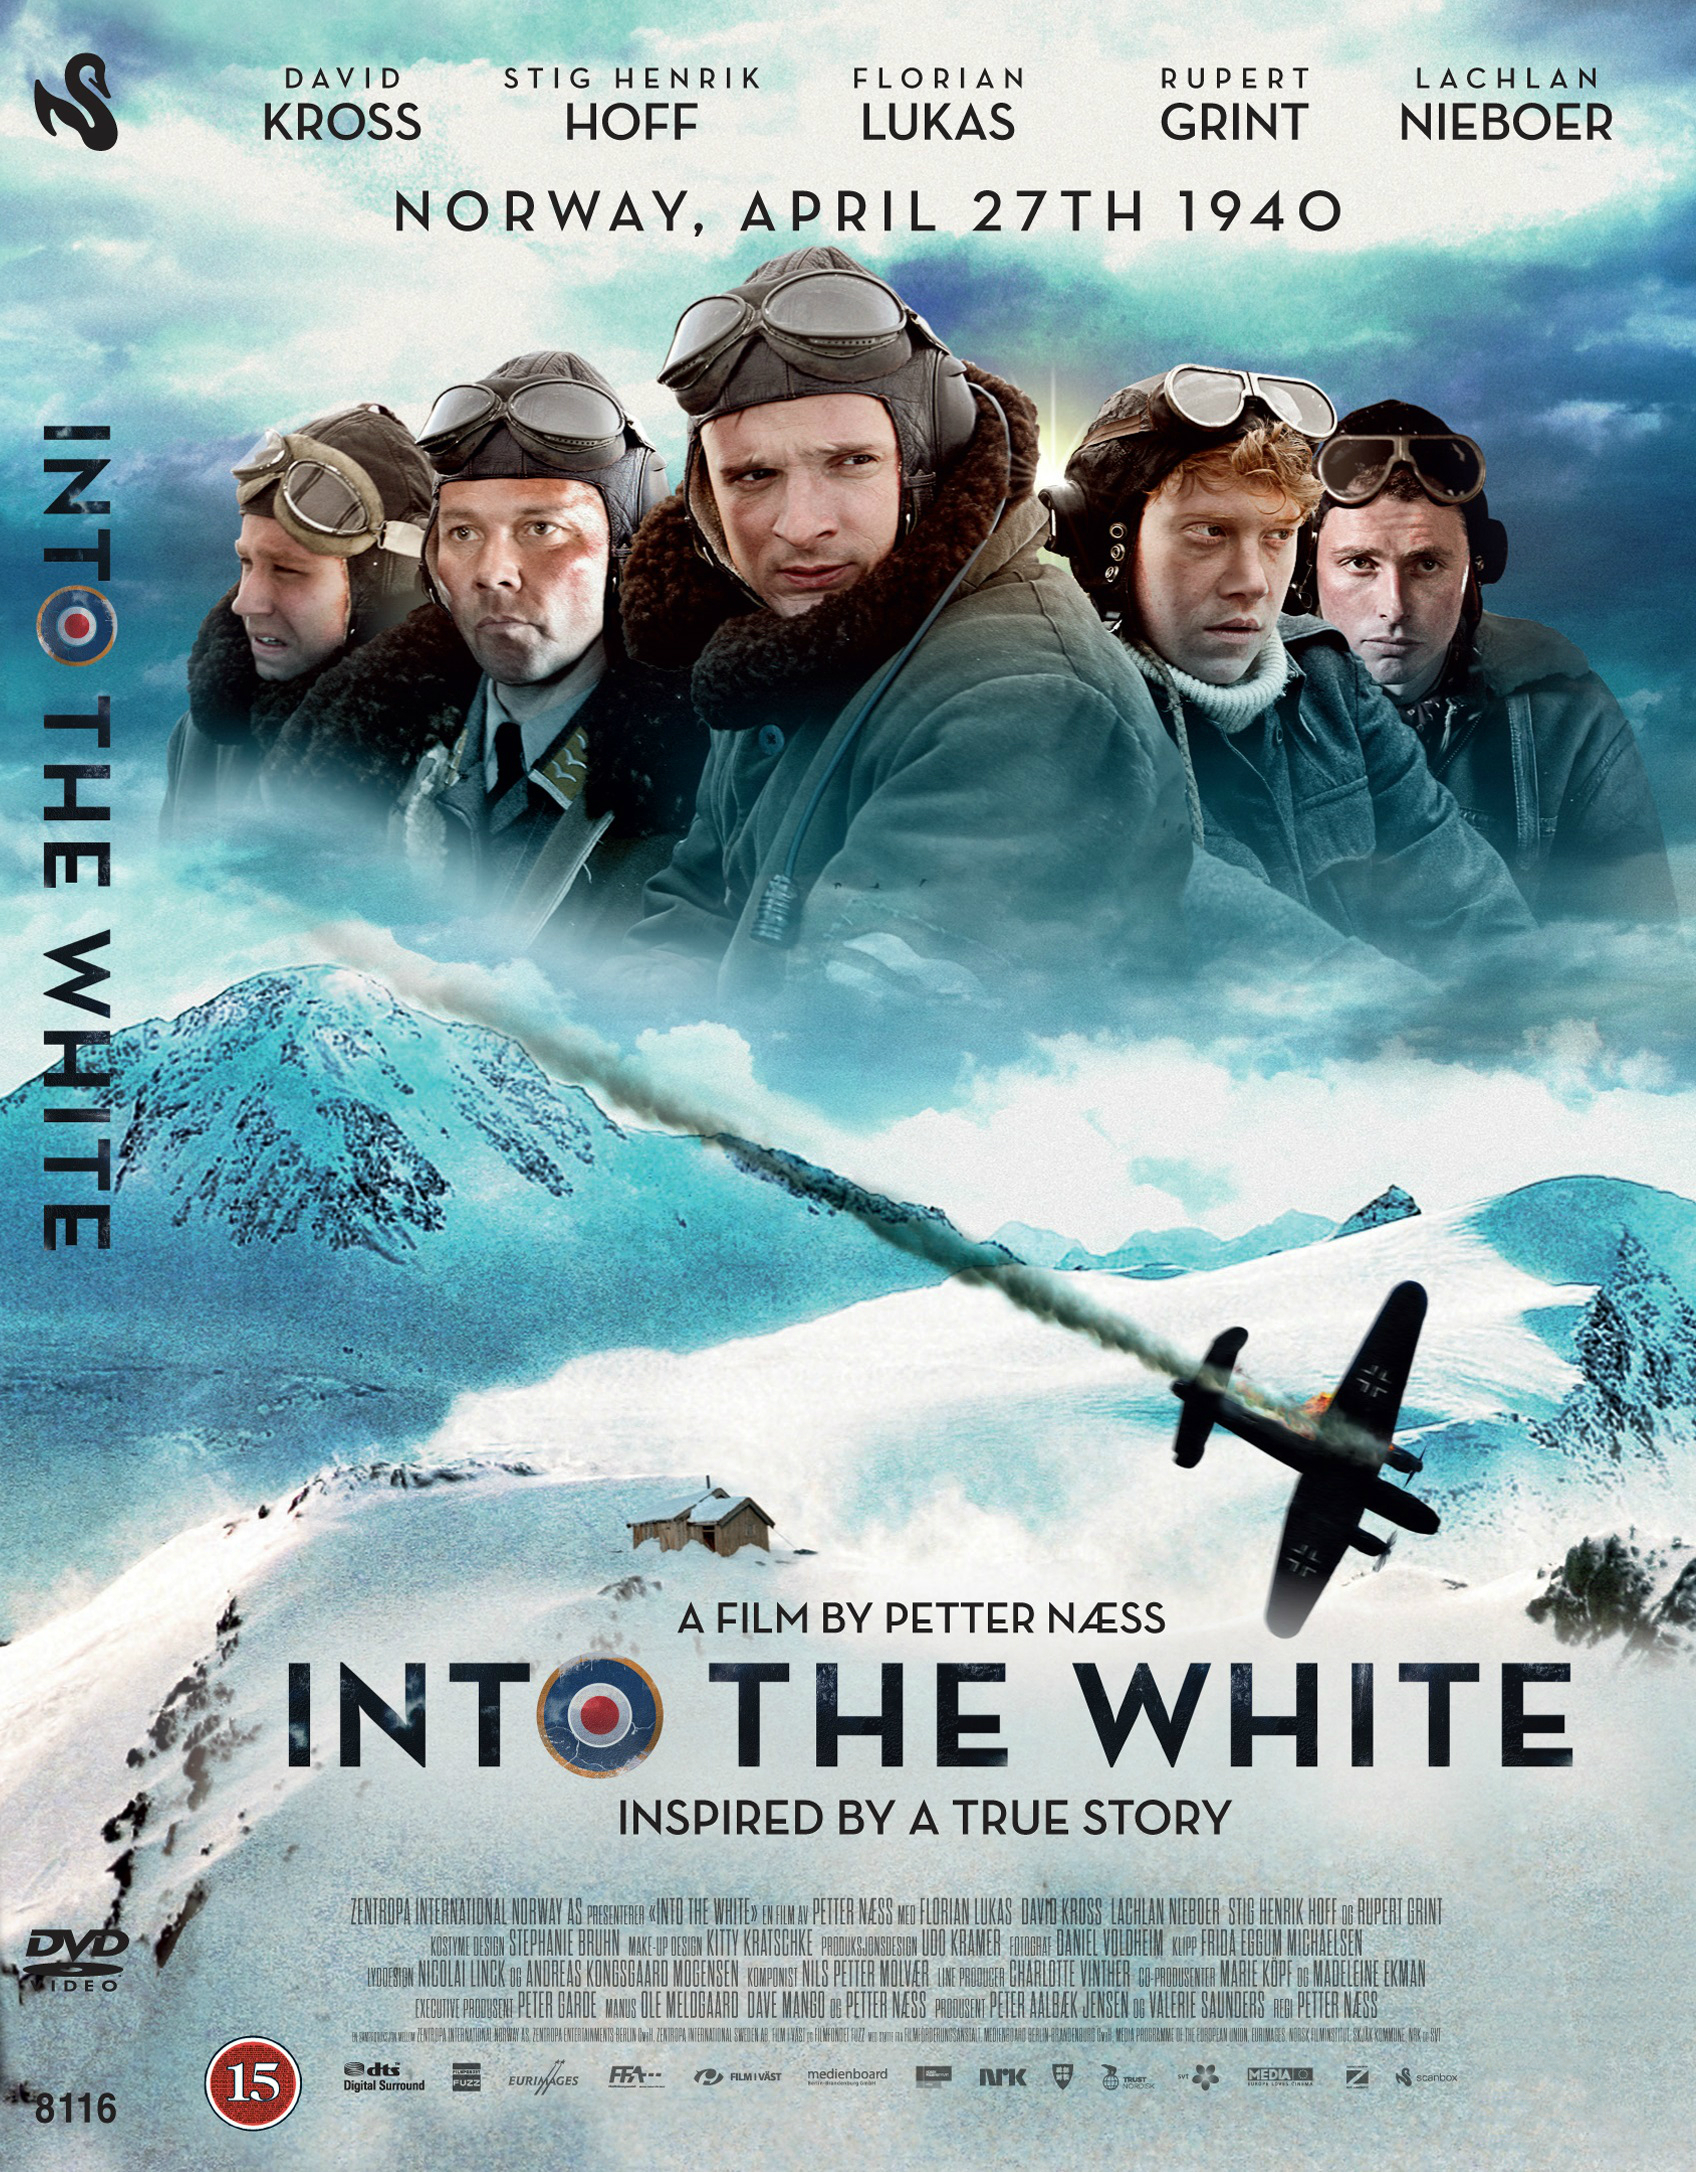 Into the White / В бялата пустош (2012)